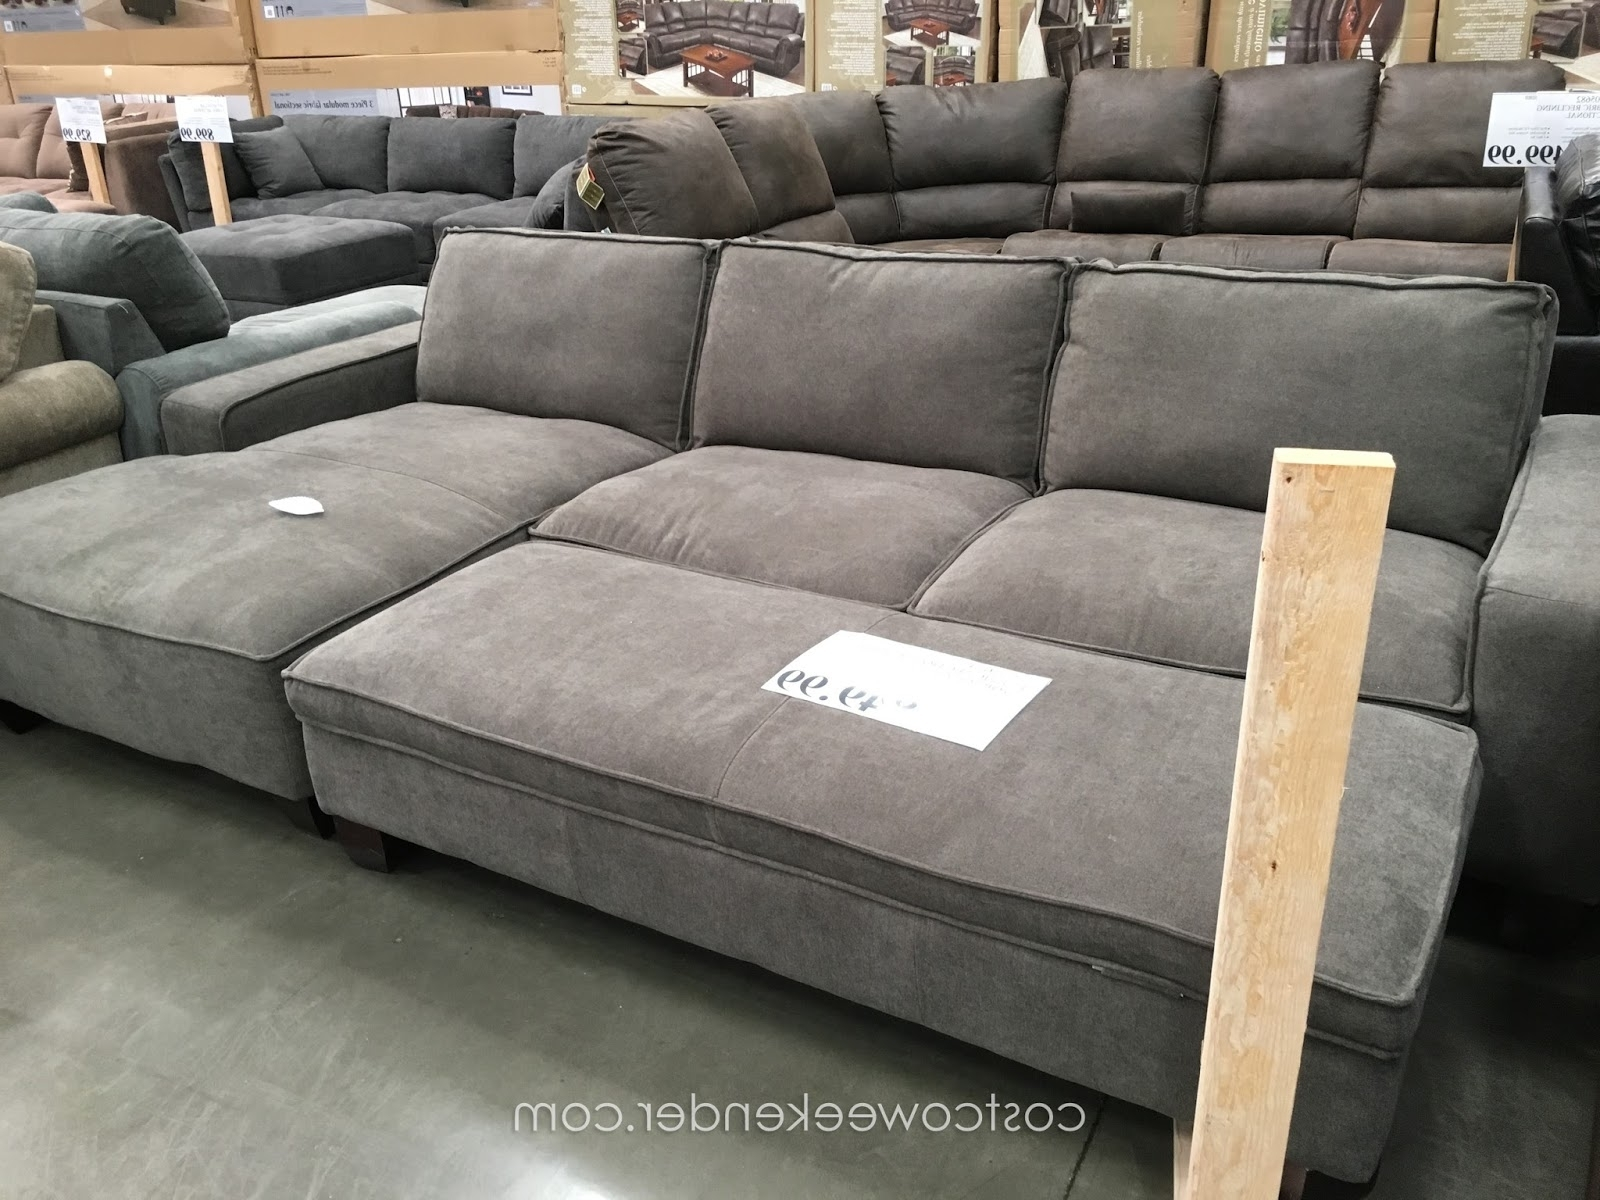 Sectional Sofa Design: Lovely Sectional Sofas Costco Leather Throughout Well Known Grey Chaise Sectionals (View 14 of 15)